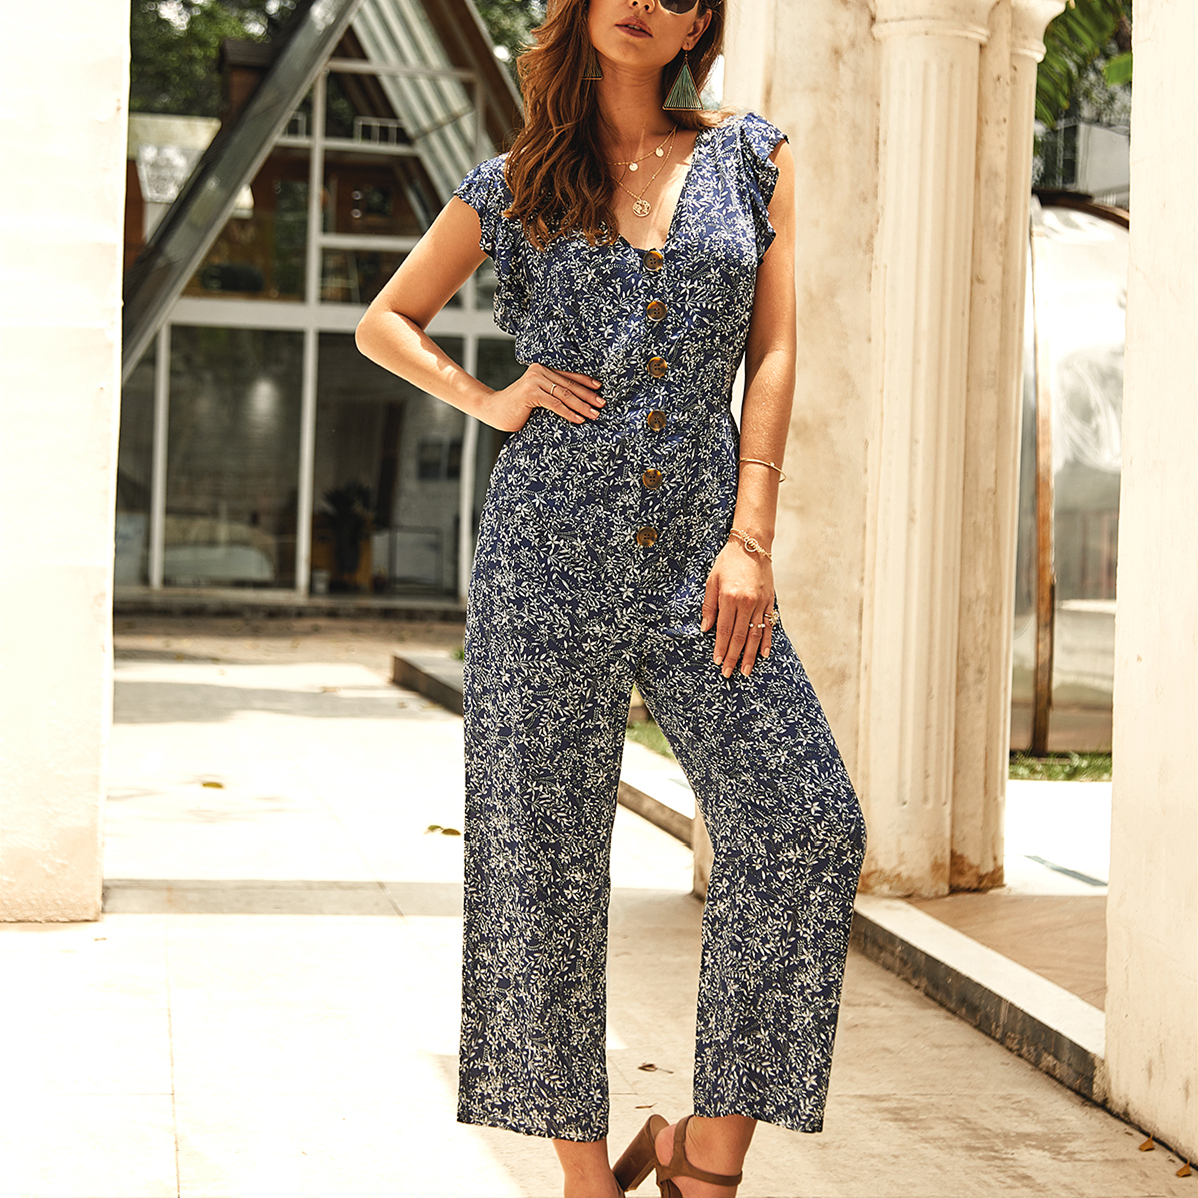 Women's Summer Boho Floral Jumpsuit Fashion Ladies Sleeveless V-Neck Playsuit Party Wide Leg Long Trousers Romper